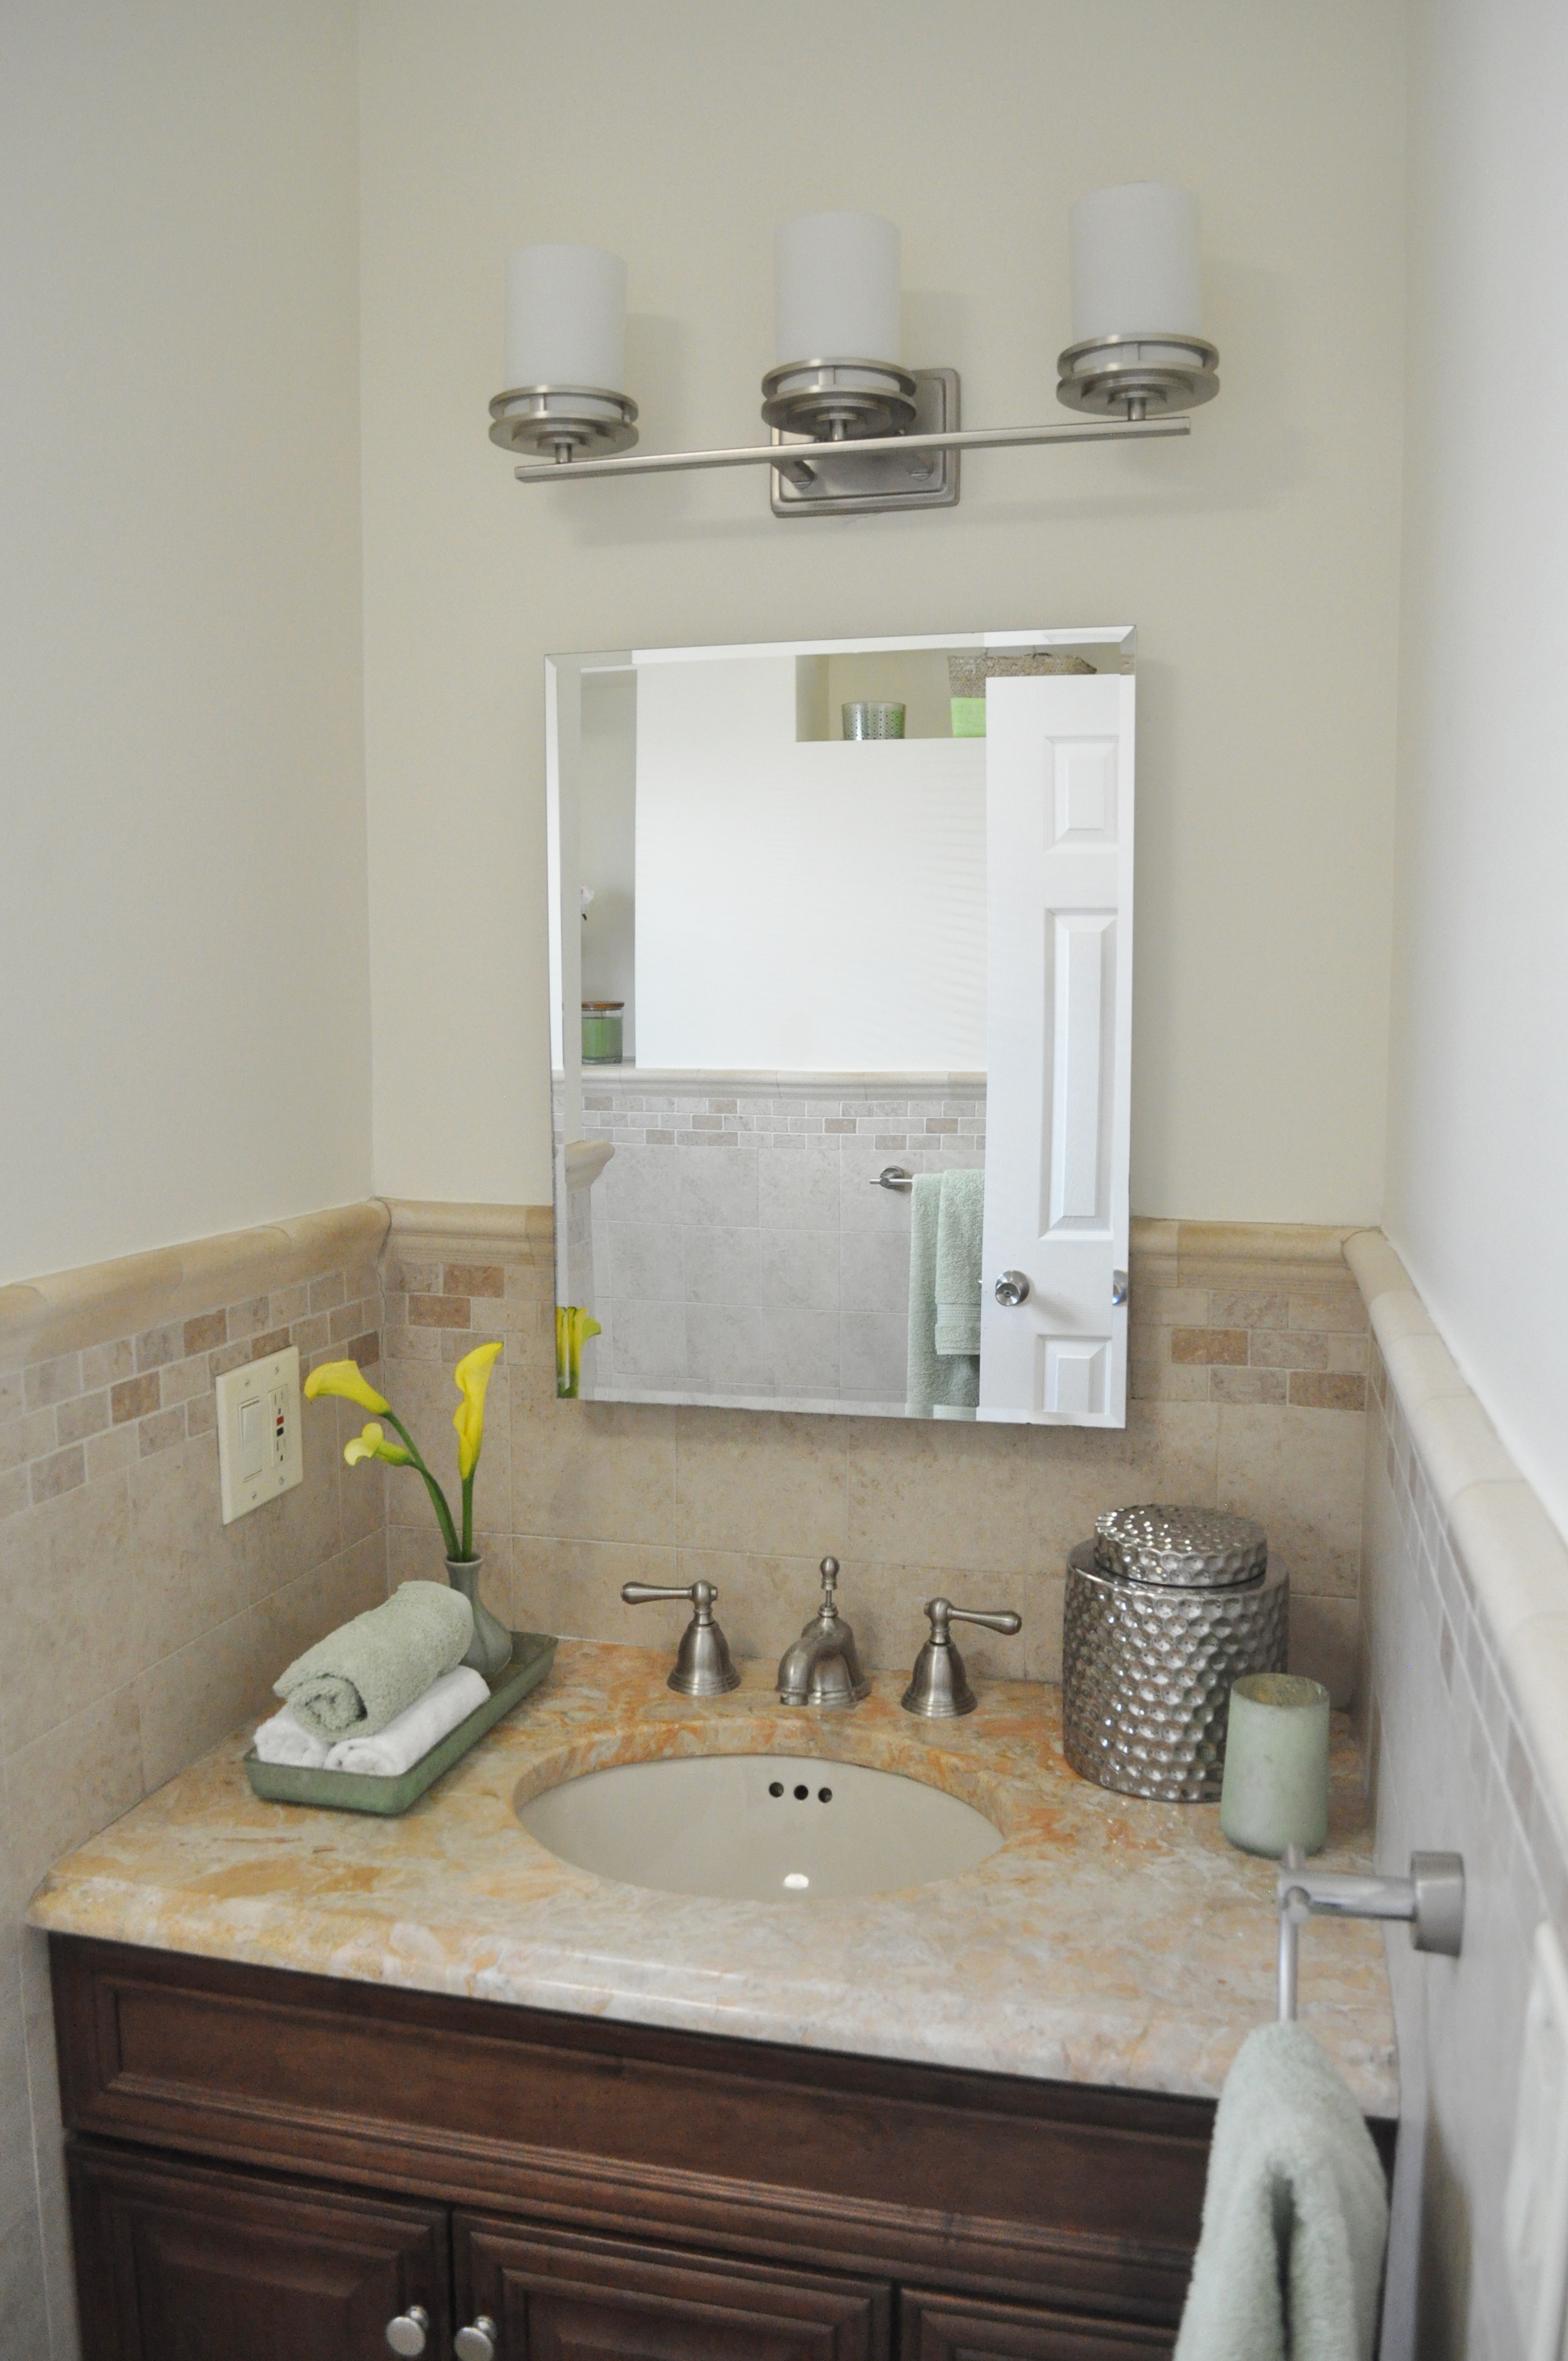 Kim Annick Mitchell_Production Designer_HGTV_Buying and Selling with The Property Brothers_Season 3_Episode 315_Master Bath_Styling Only_No remodel.jpg